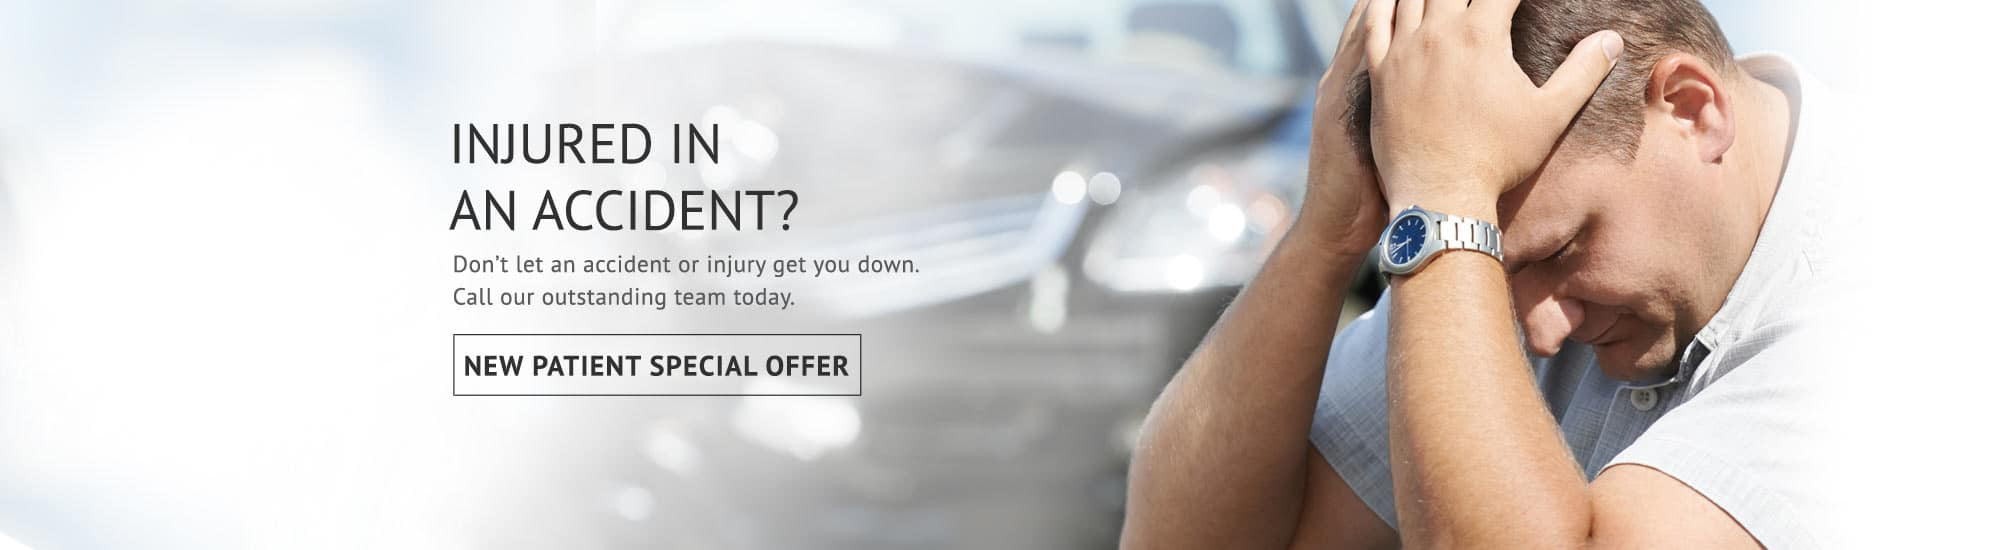 Chiropractic Flower Mound TX Auto Injury